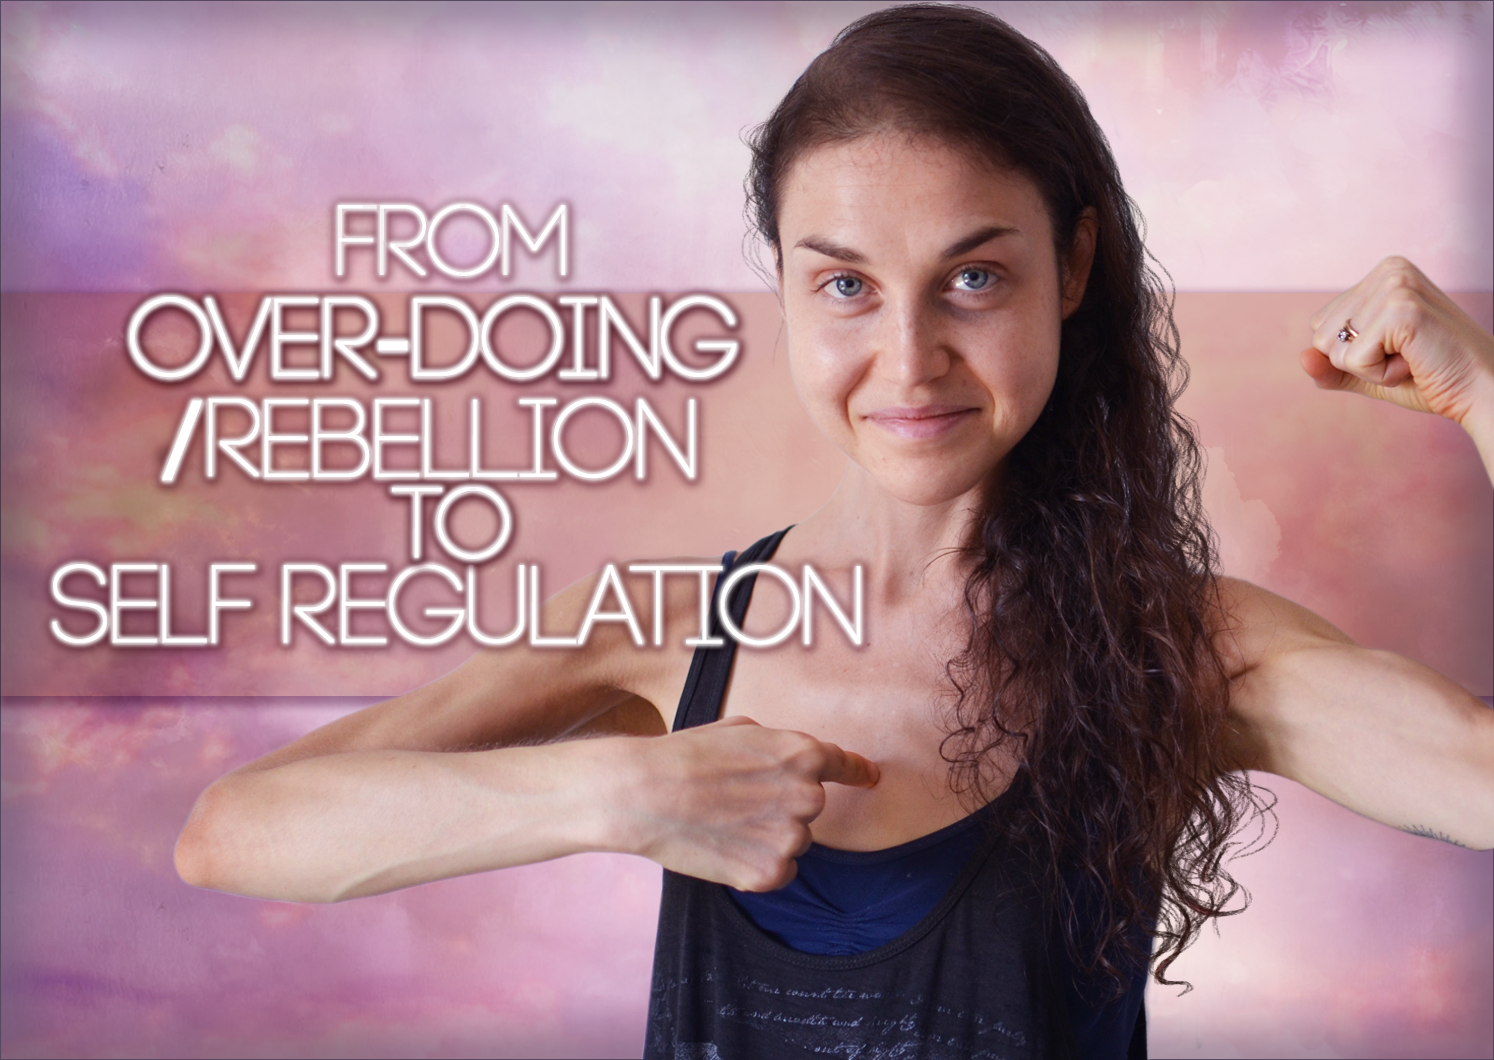 From Over-Doing/Rebellion to SELF REGULATION: